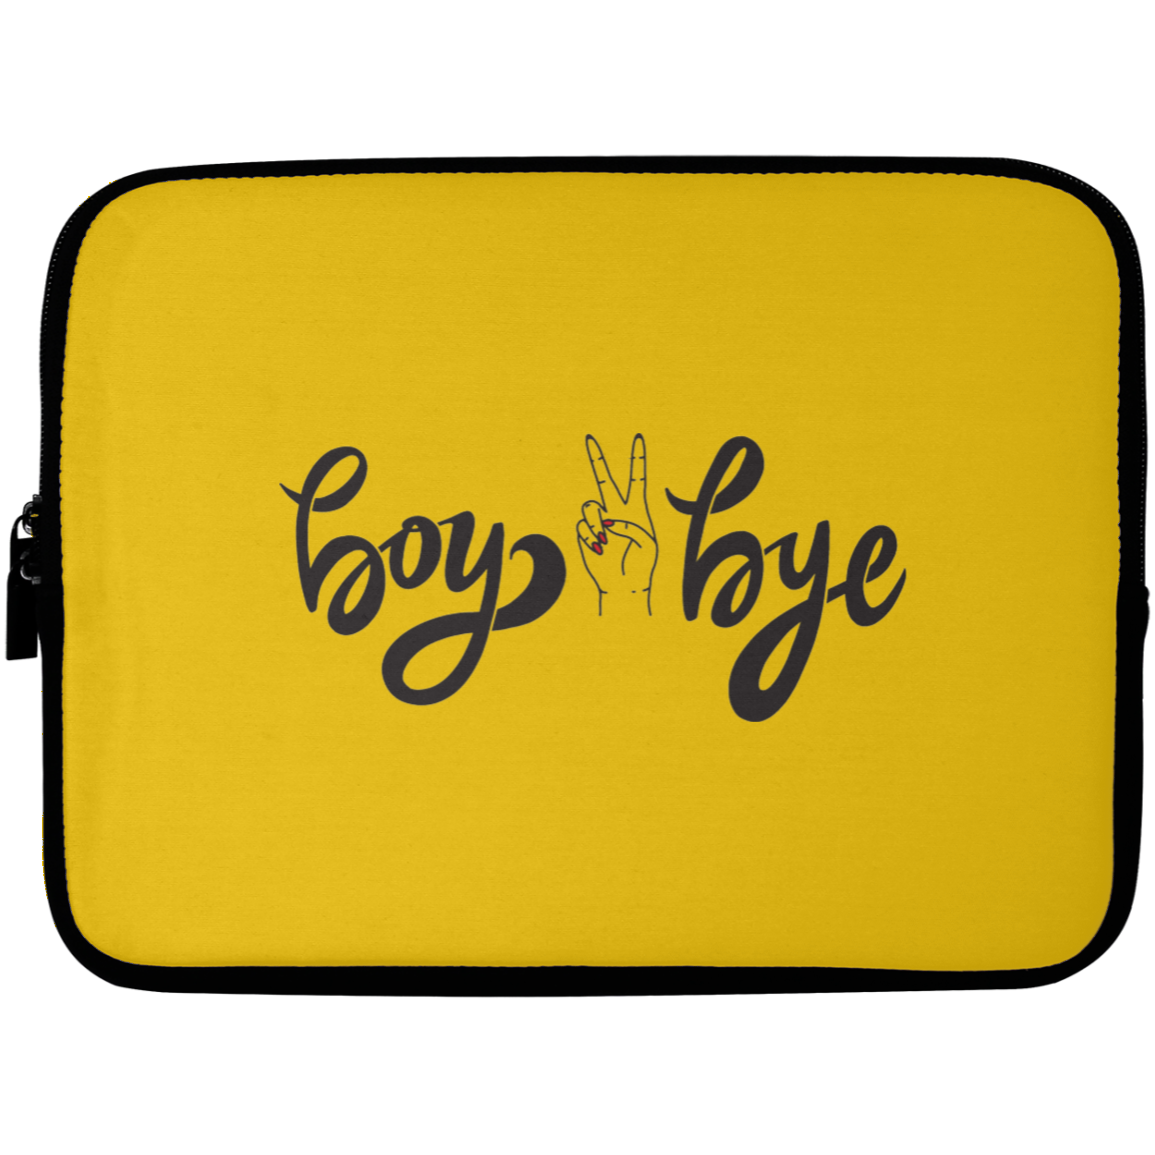 Boy Bye Laptop Sleeve - 10 inch